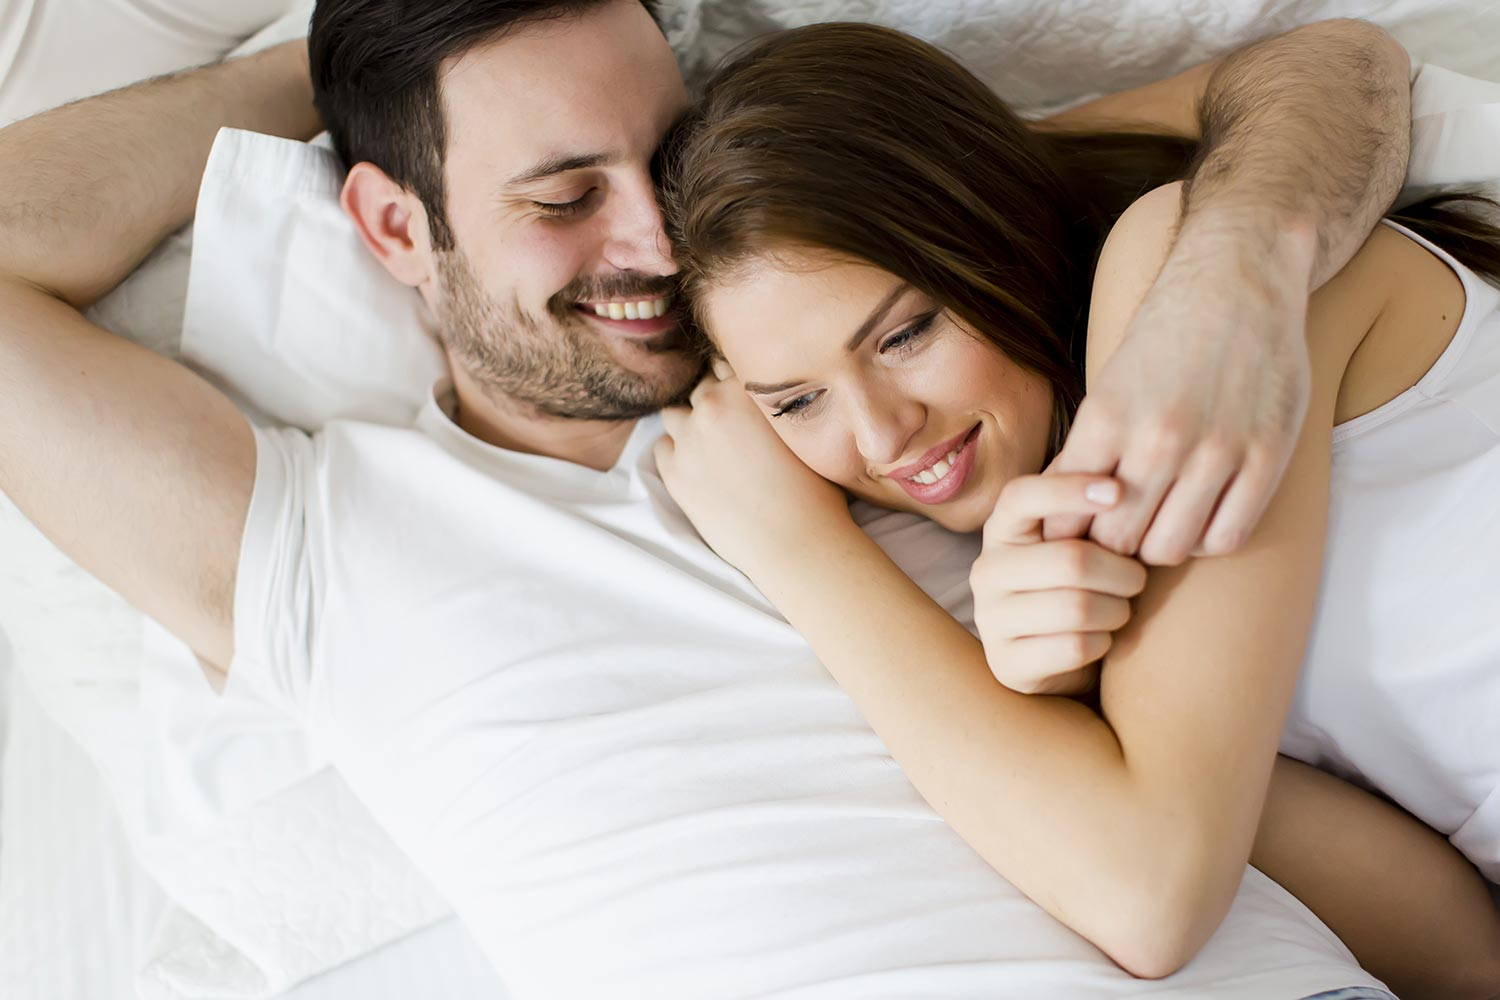 Sex poses for couples who have been together for a long time